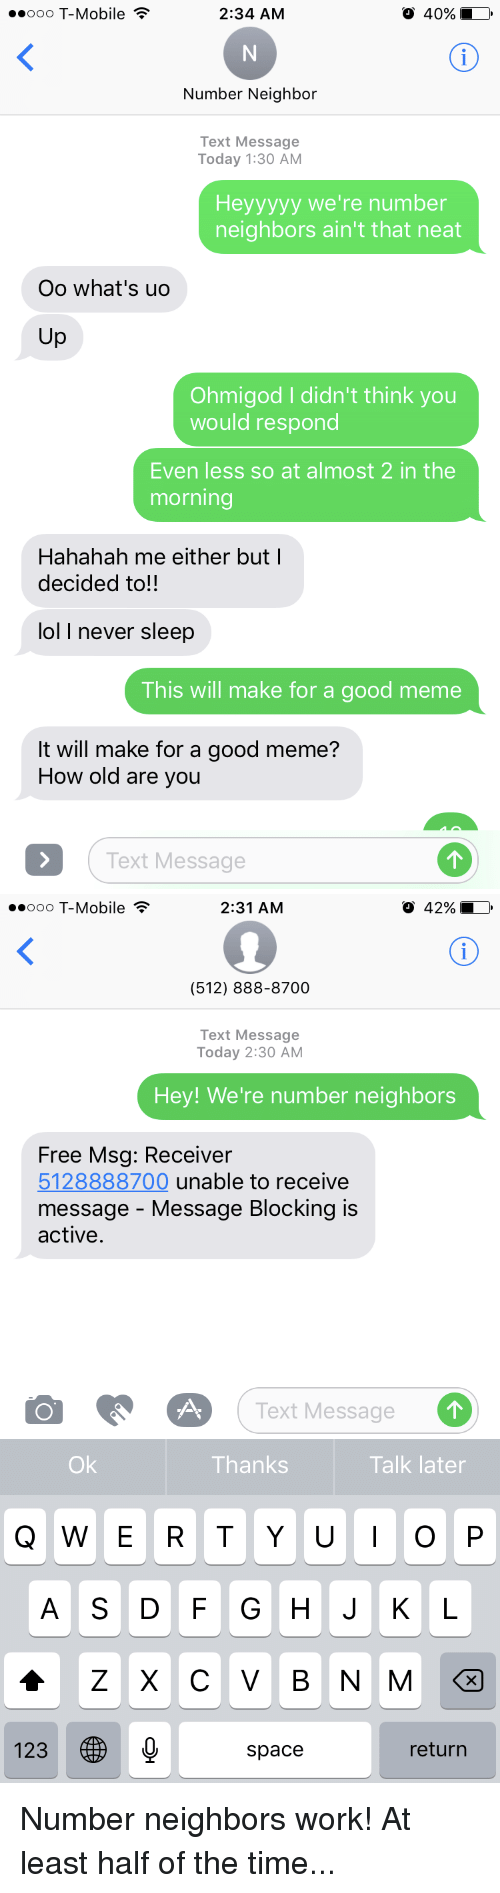 Ooo T-Mobile 234 AM 40% Number Neighbor Text Message Today